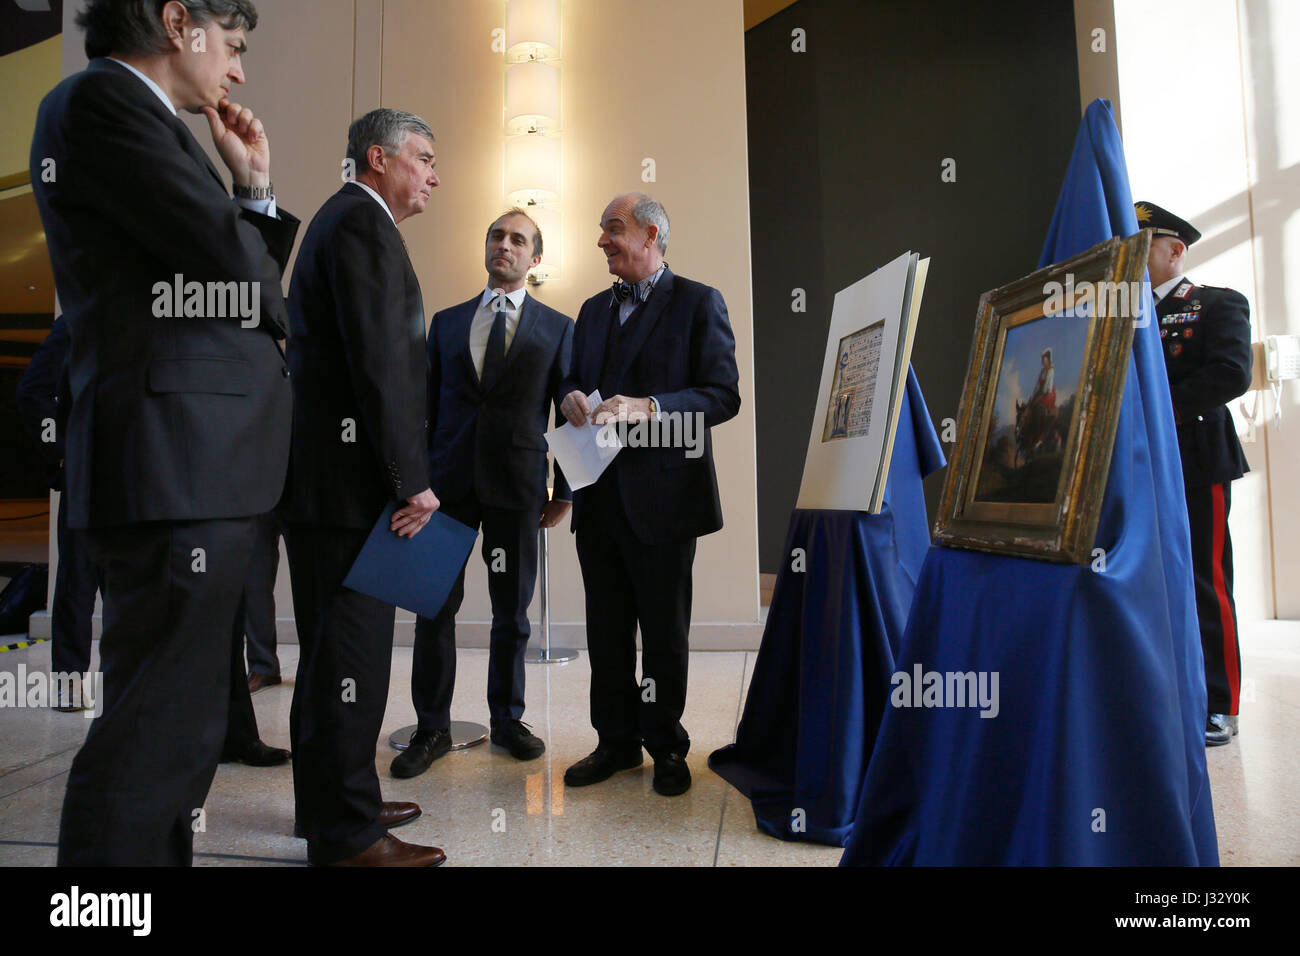 U.S. Customs and Border Protection Commissioner R. Gil Kerlikowske looks over two items on display as he attends - Stock Image